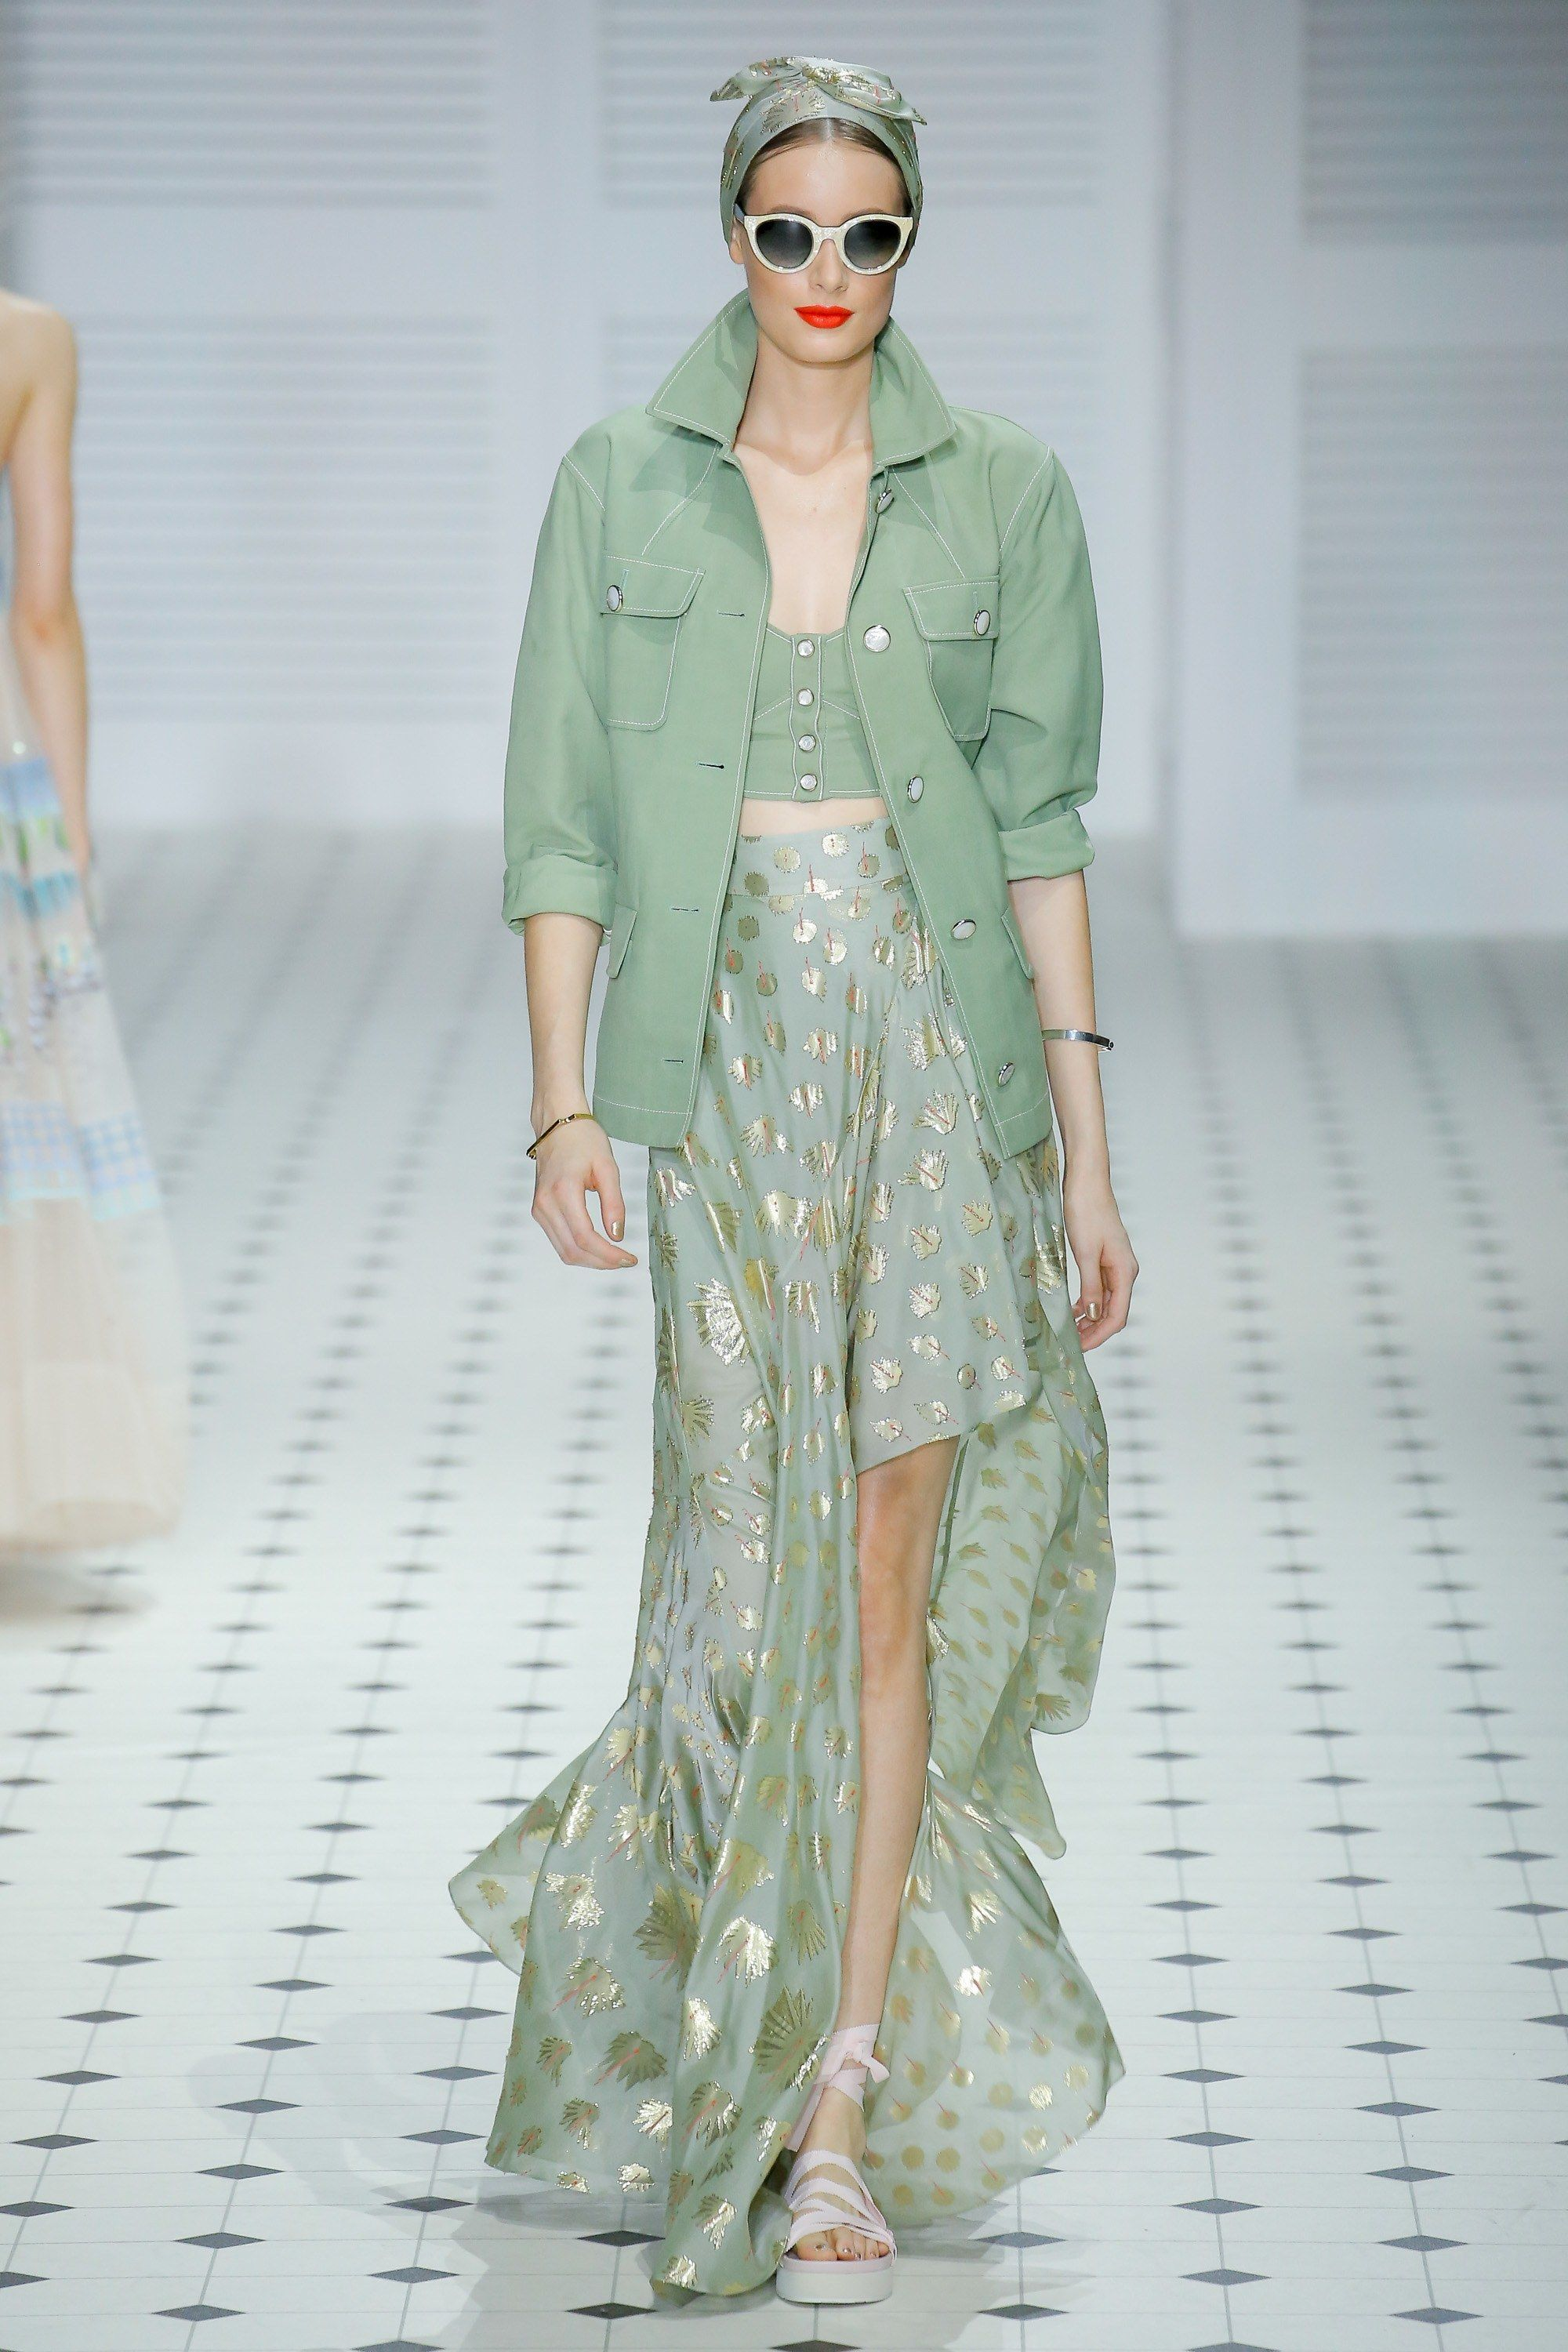 Summer Trends 2020.Mint The Spring Summer 2020 Colour Trend Fashion London